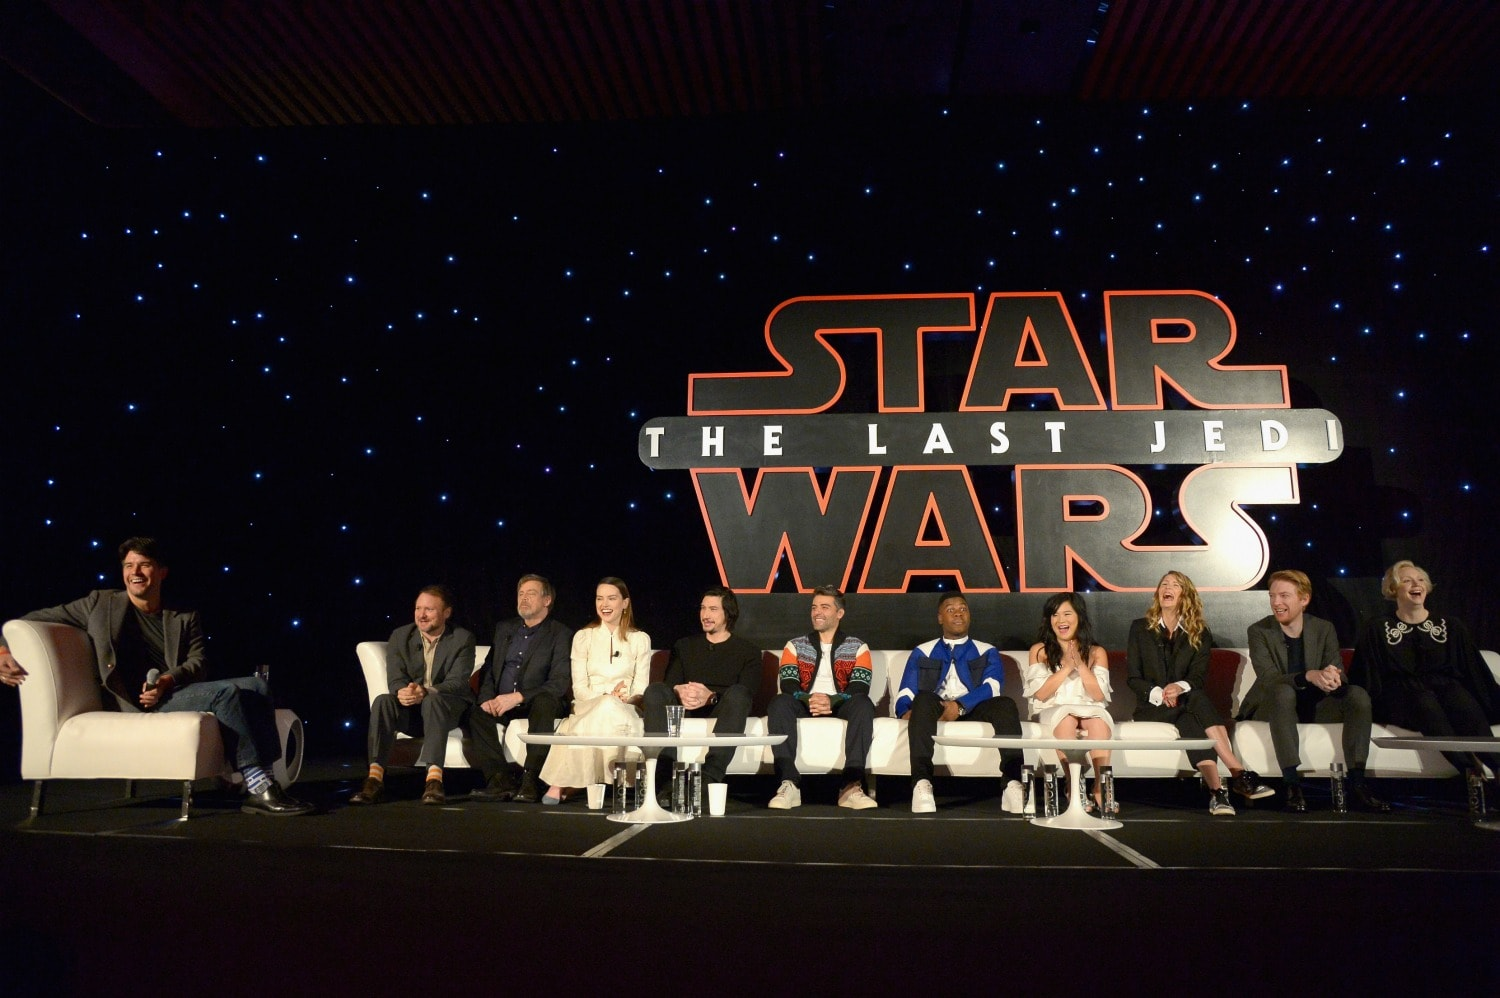 Star Wars Press Event cast